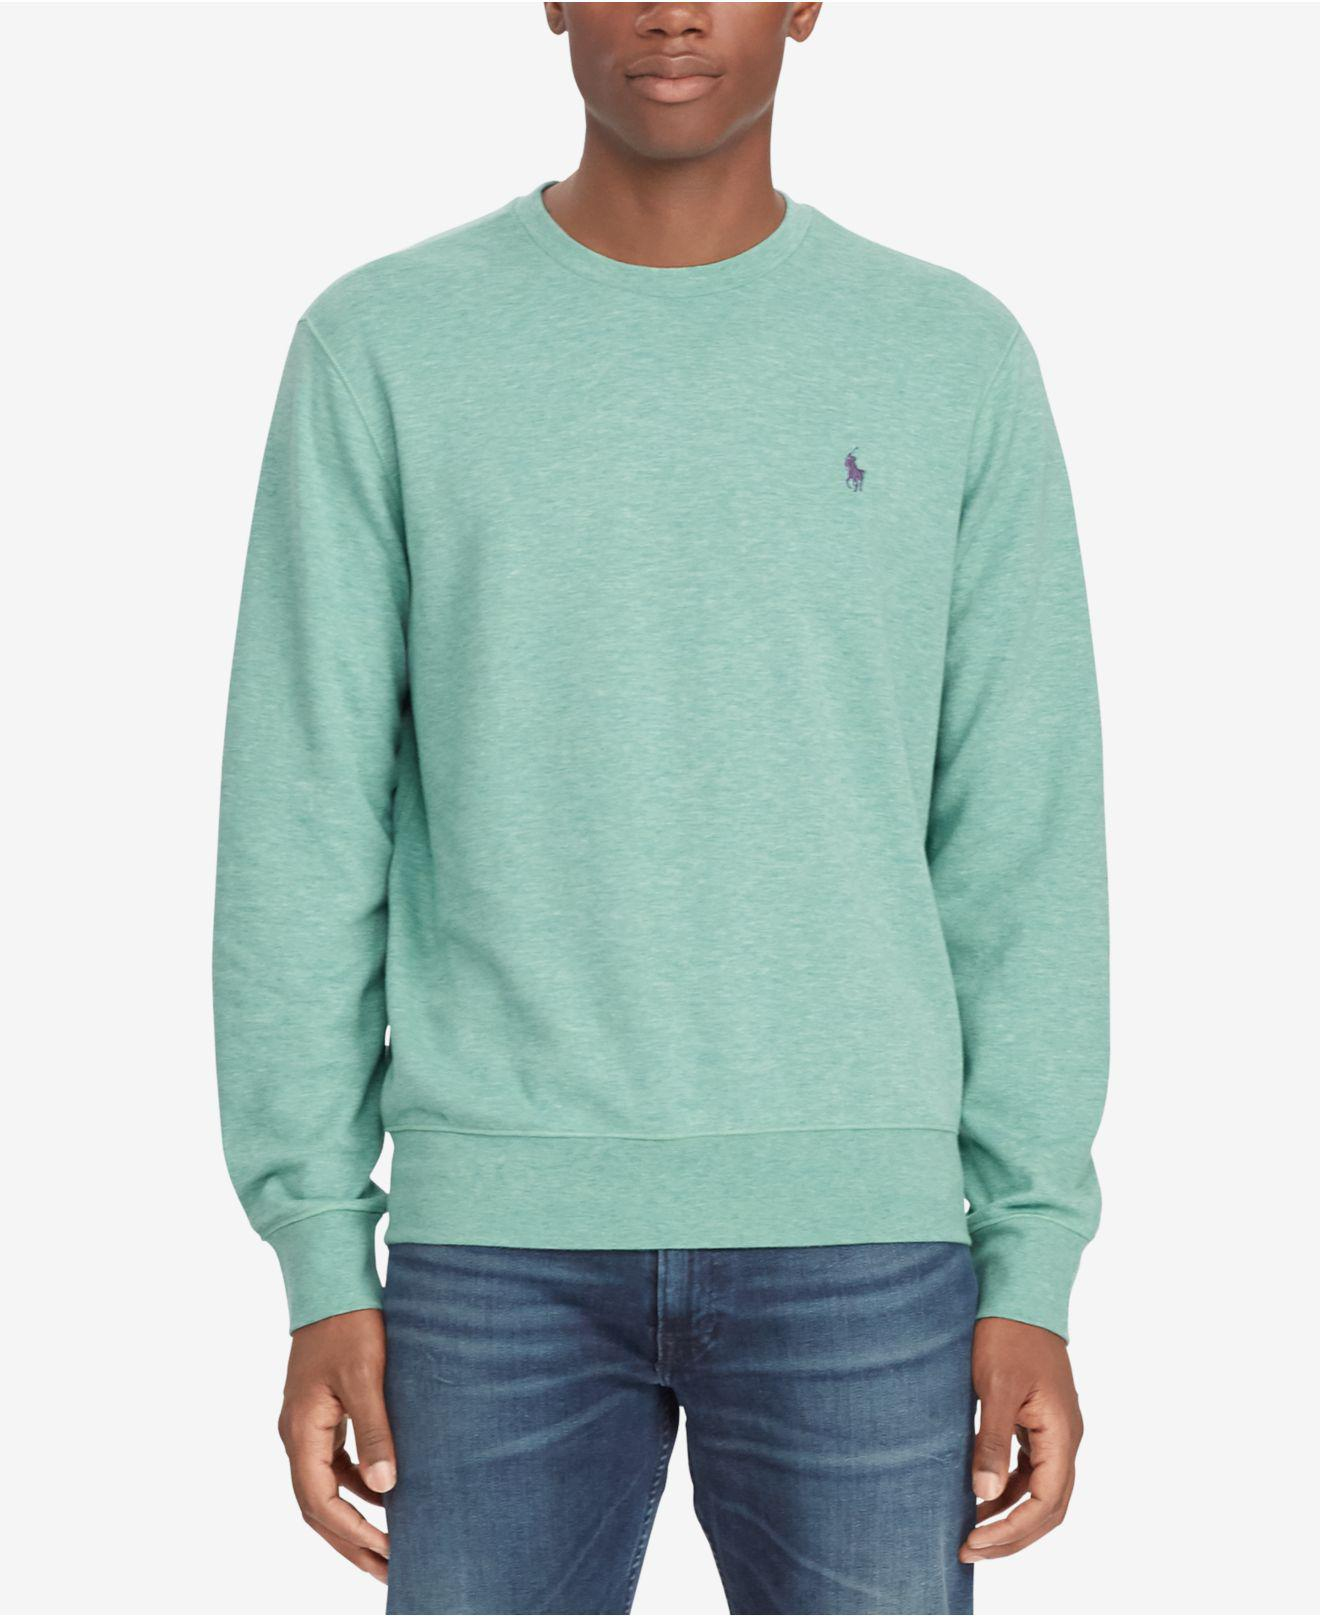 7c856f41c9a96 Lyst - Polo Ralph Lauren Classic Fit Long-sleeve T-shirt in Green ...